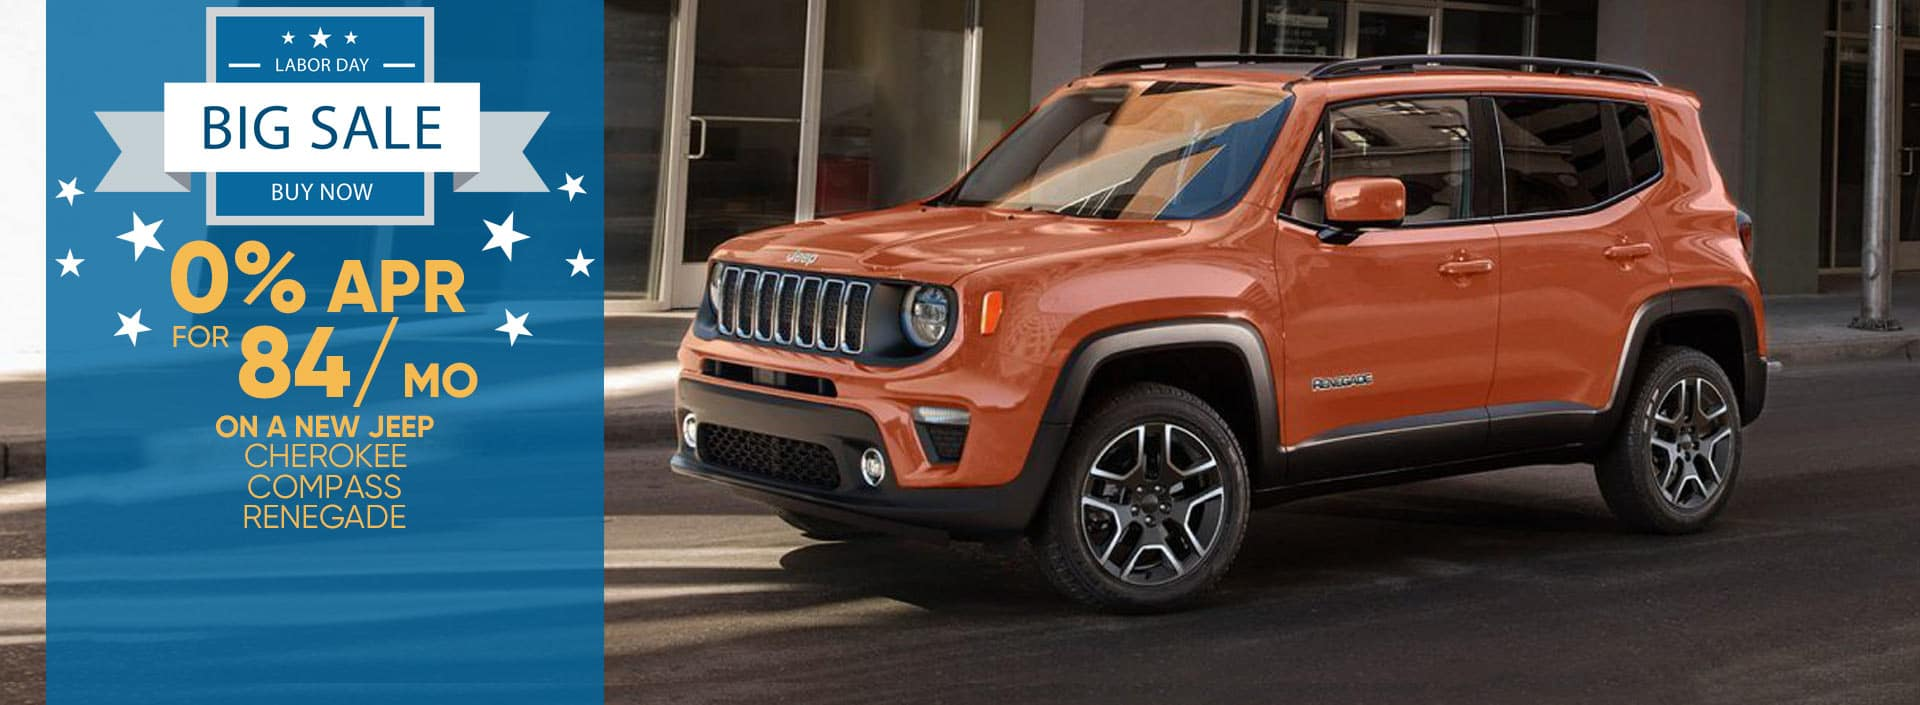 Jeep Renegade Jeep Compass